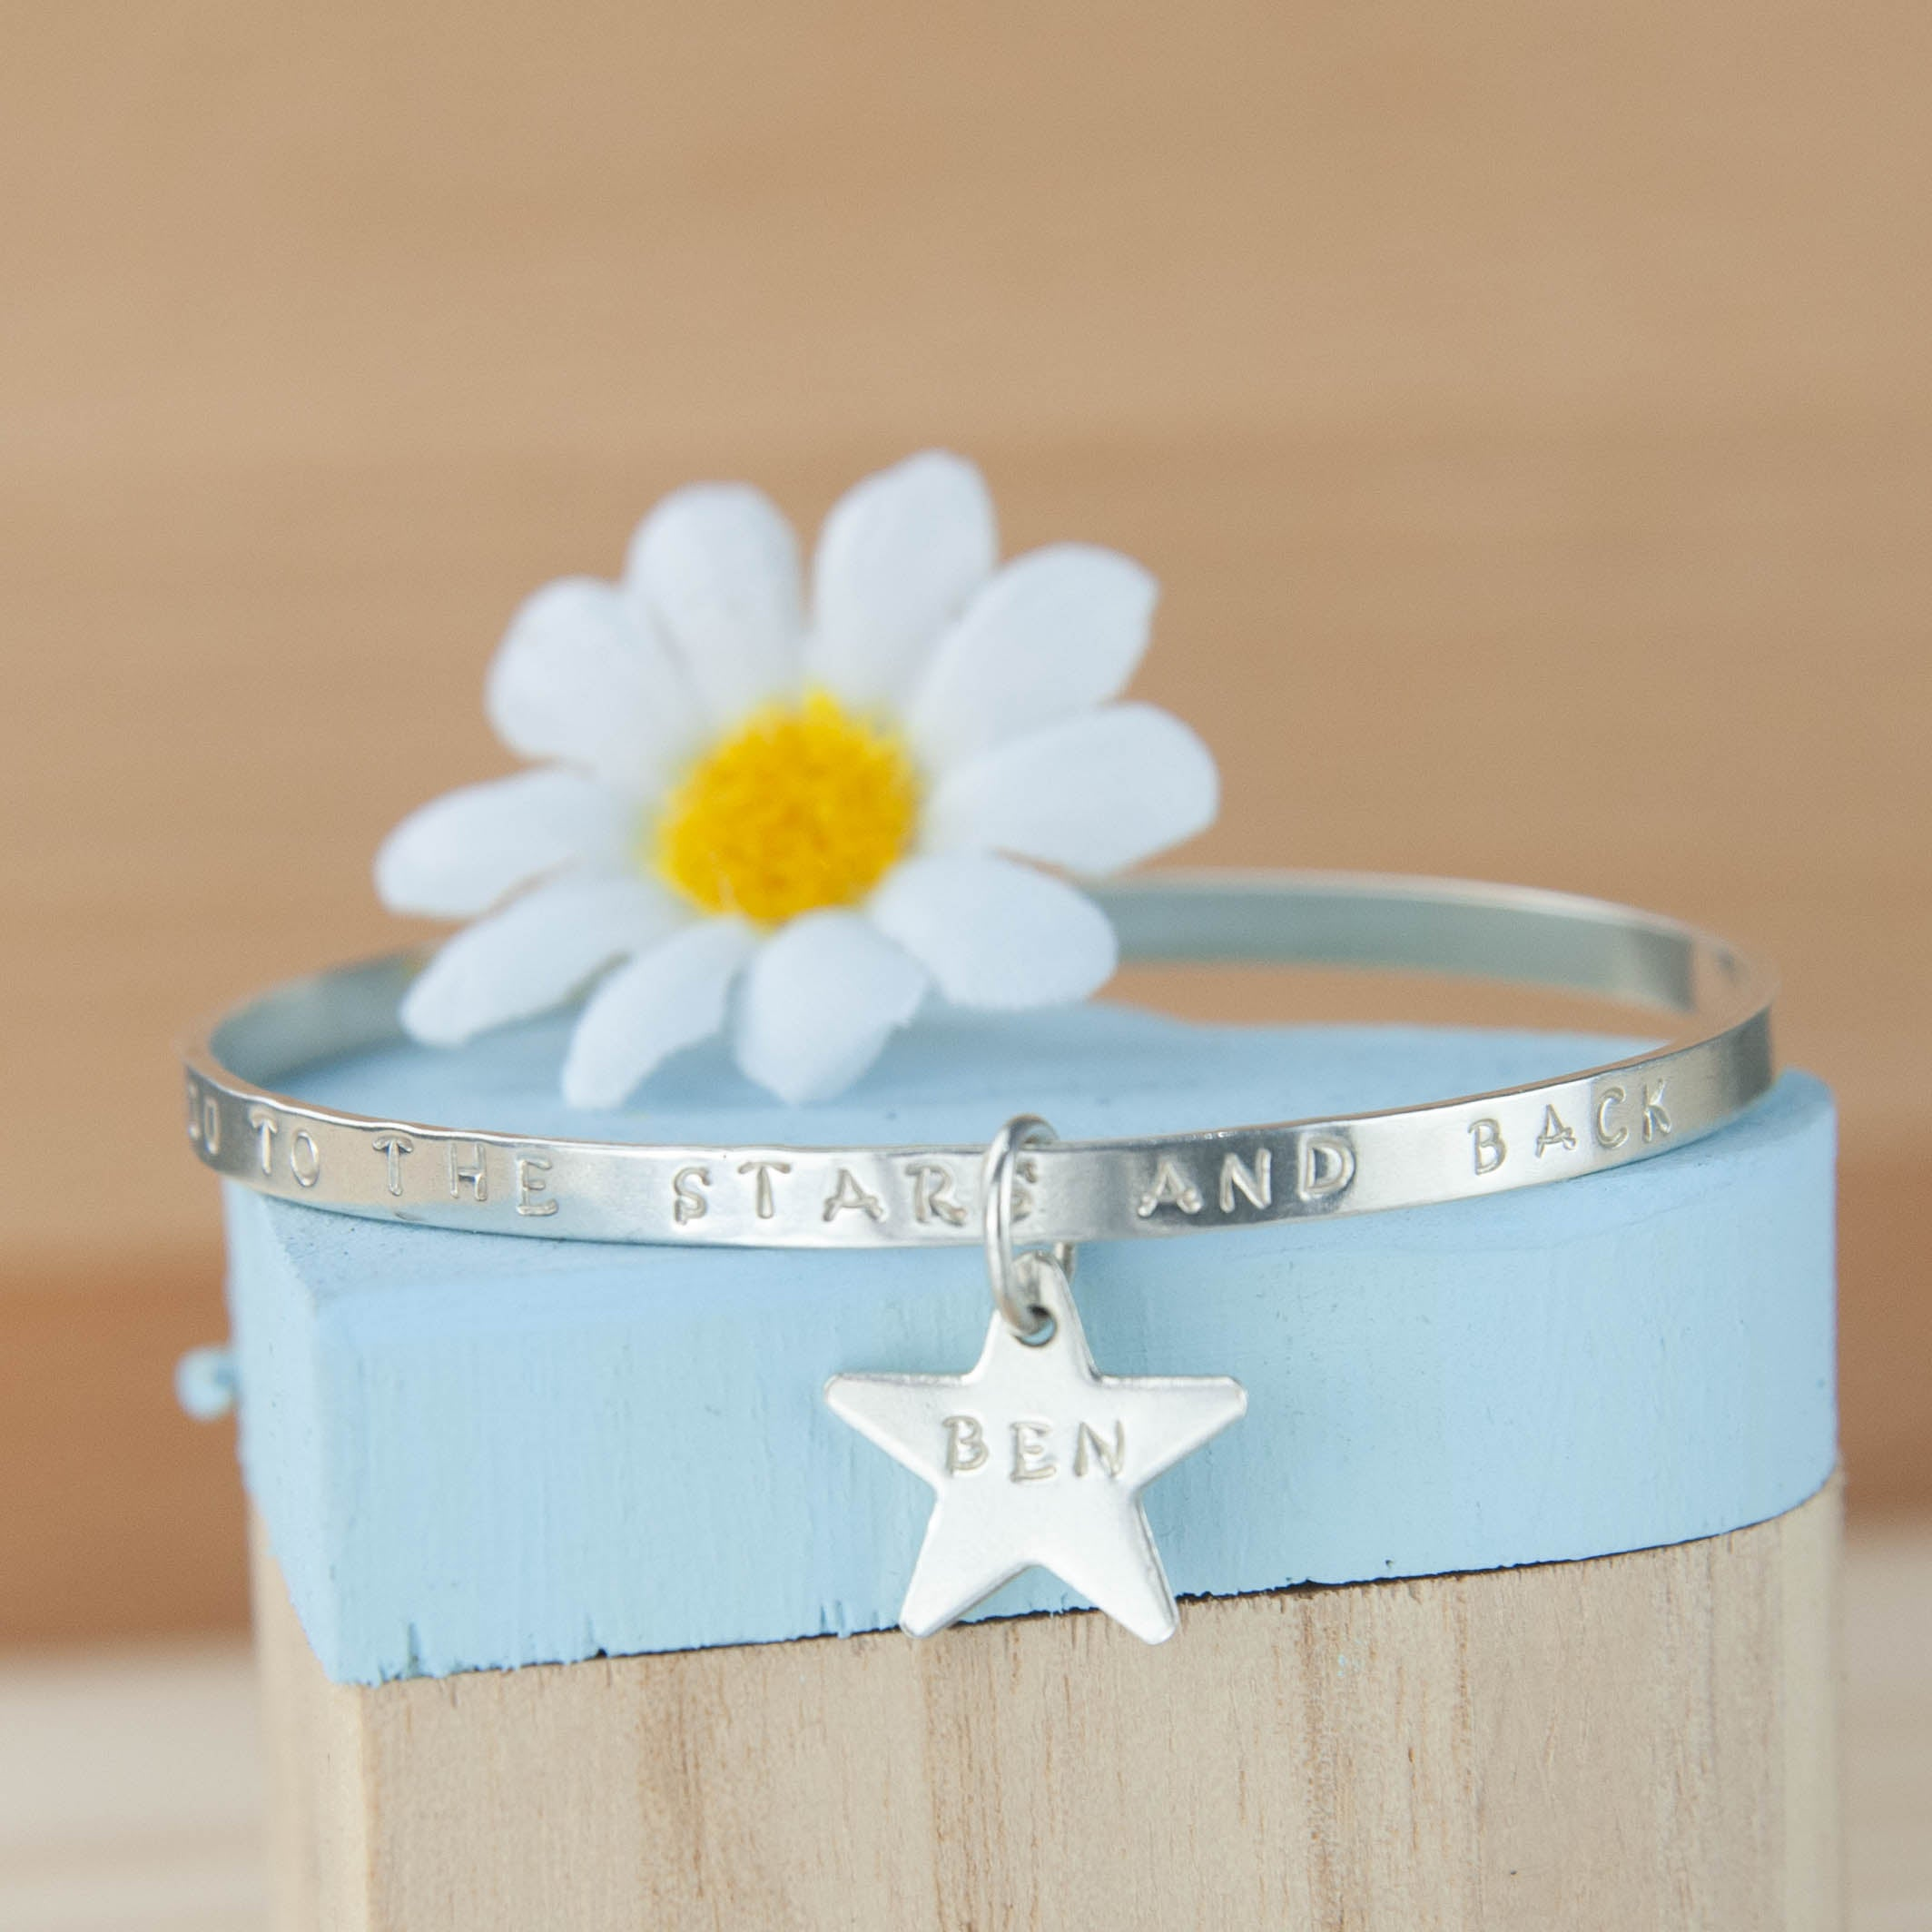 Belle & Bee Sterling silver message bangle with star charm